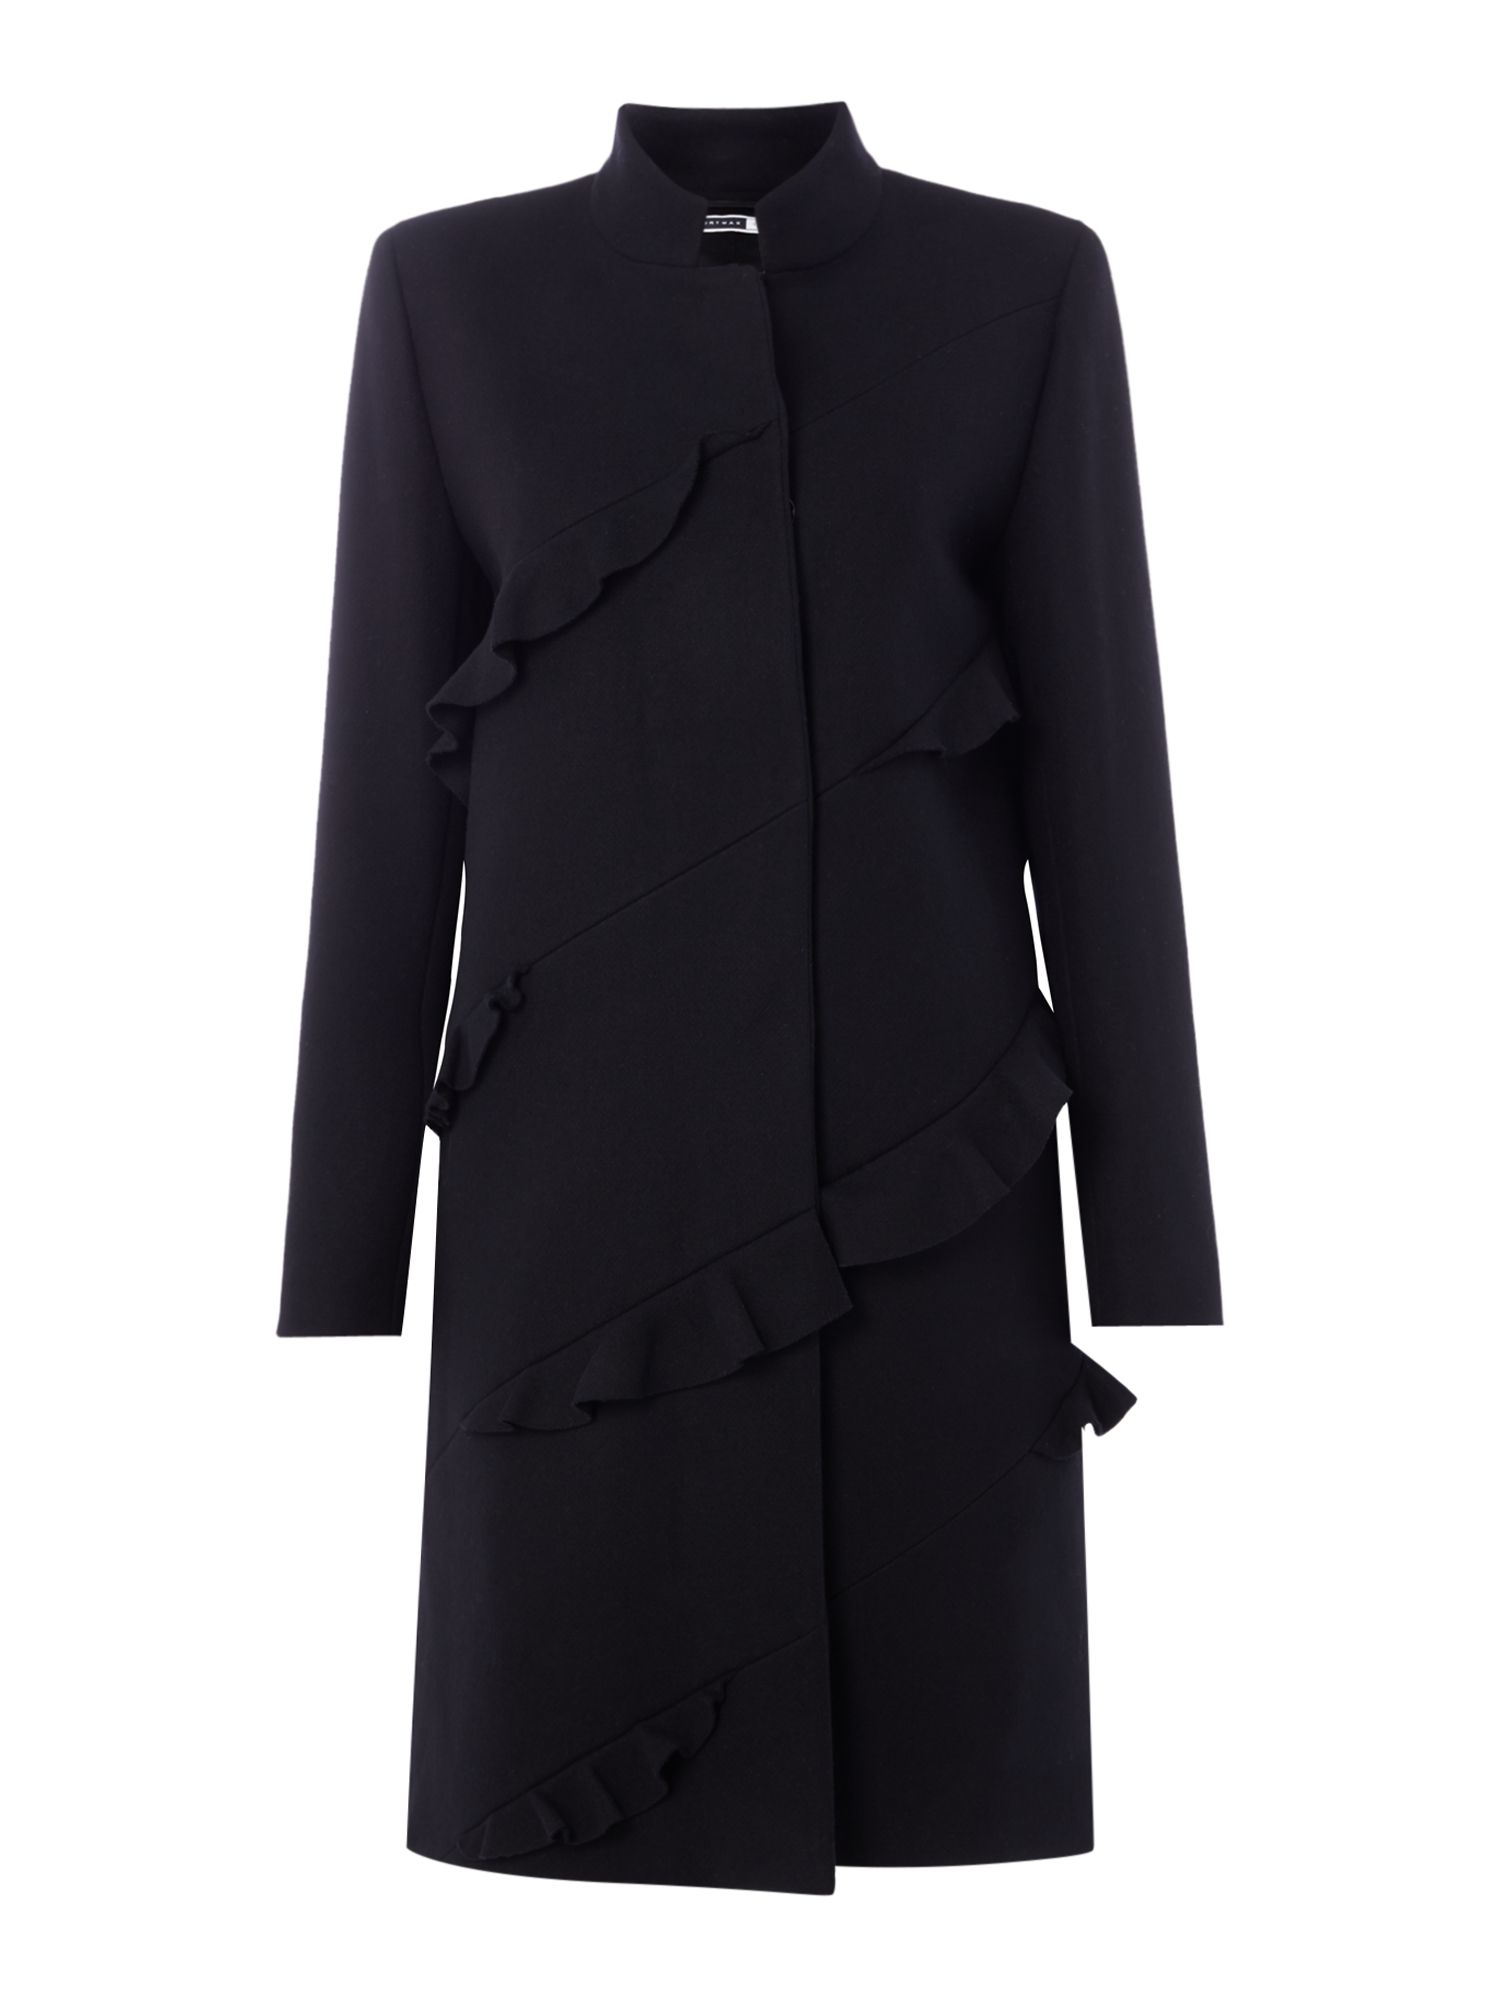 Sportmax Code Erik frill detail wool coat, Black